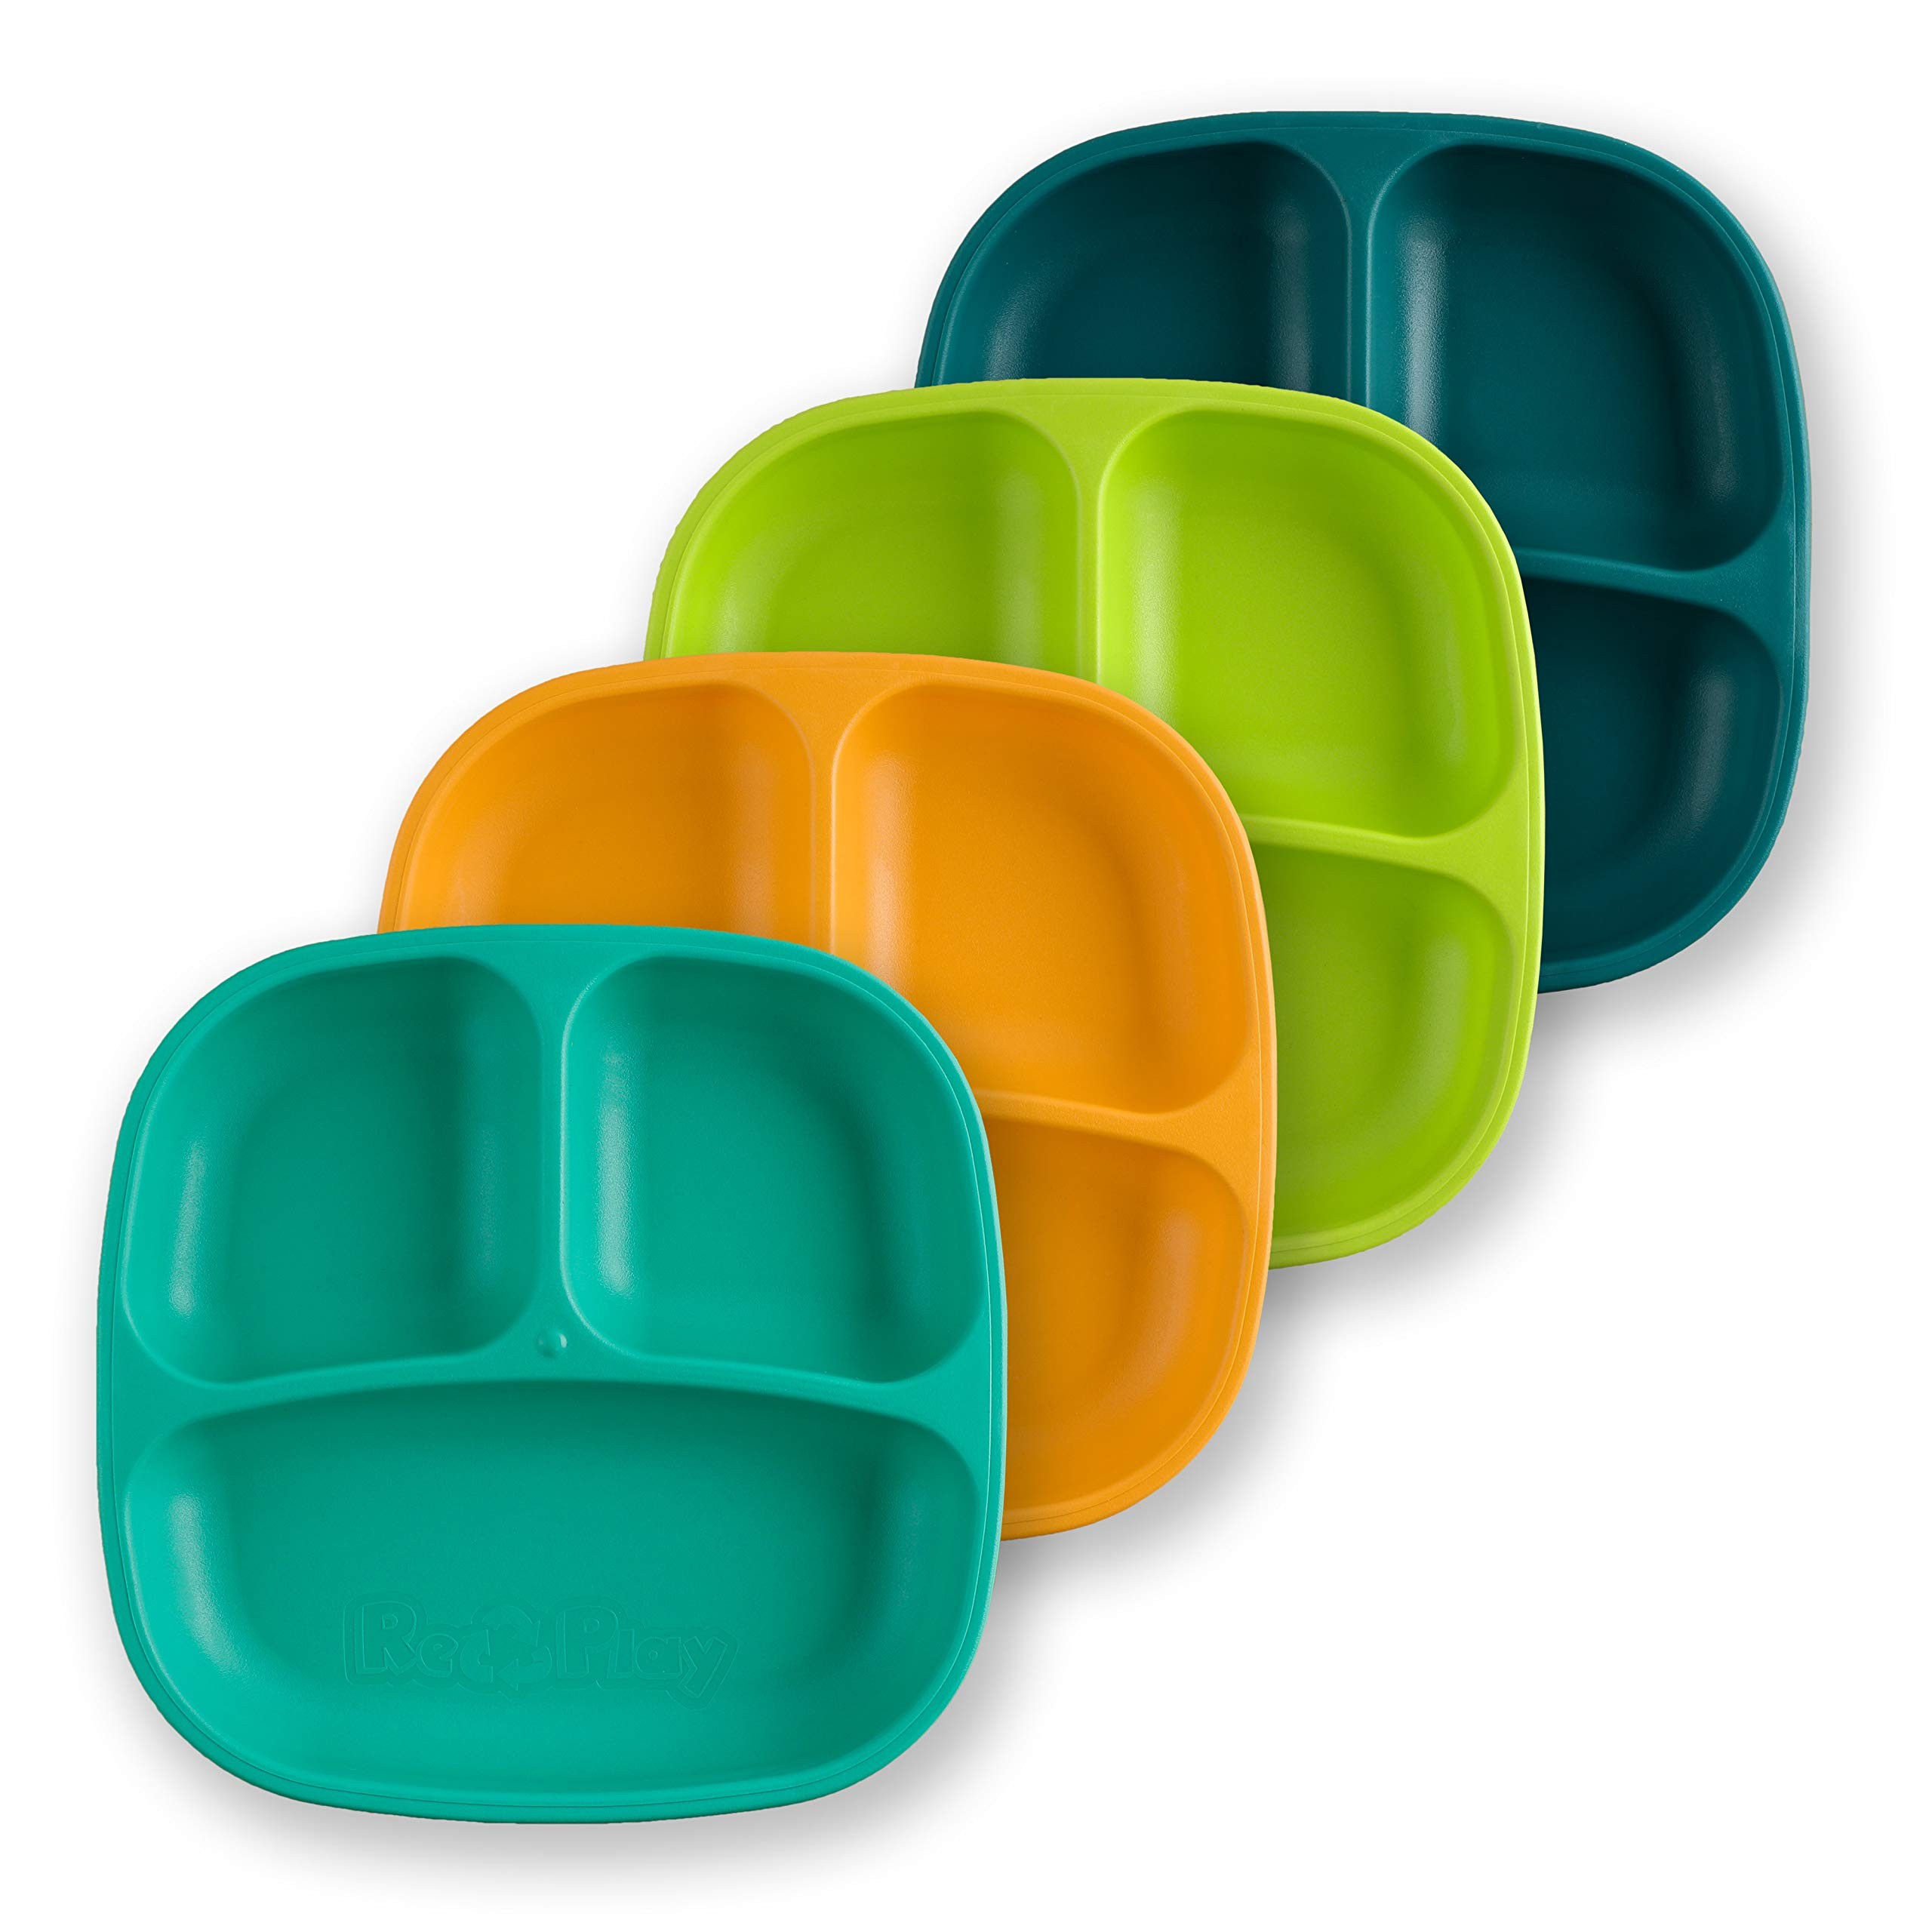 Re-Play Made in USA 4pk Divided Deep Walled Plates in Teal, Lime Green, Sunny Yellow and Aqua | Made from Eco Friendly Heavyweight Recycled Milk Jugs - Virtually Indestructible (Aqua Asst+)